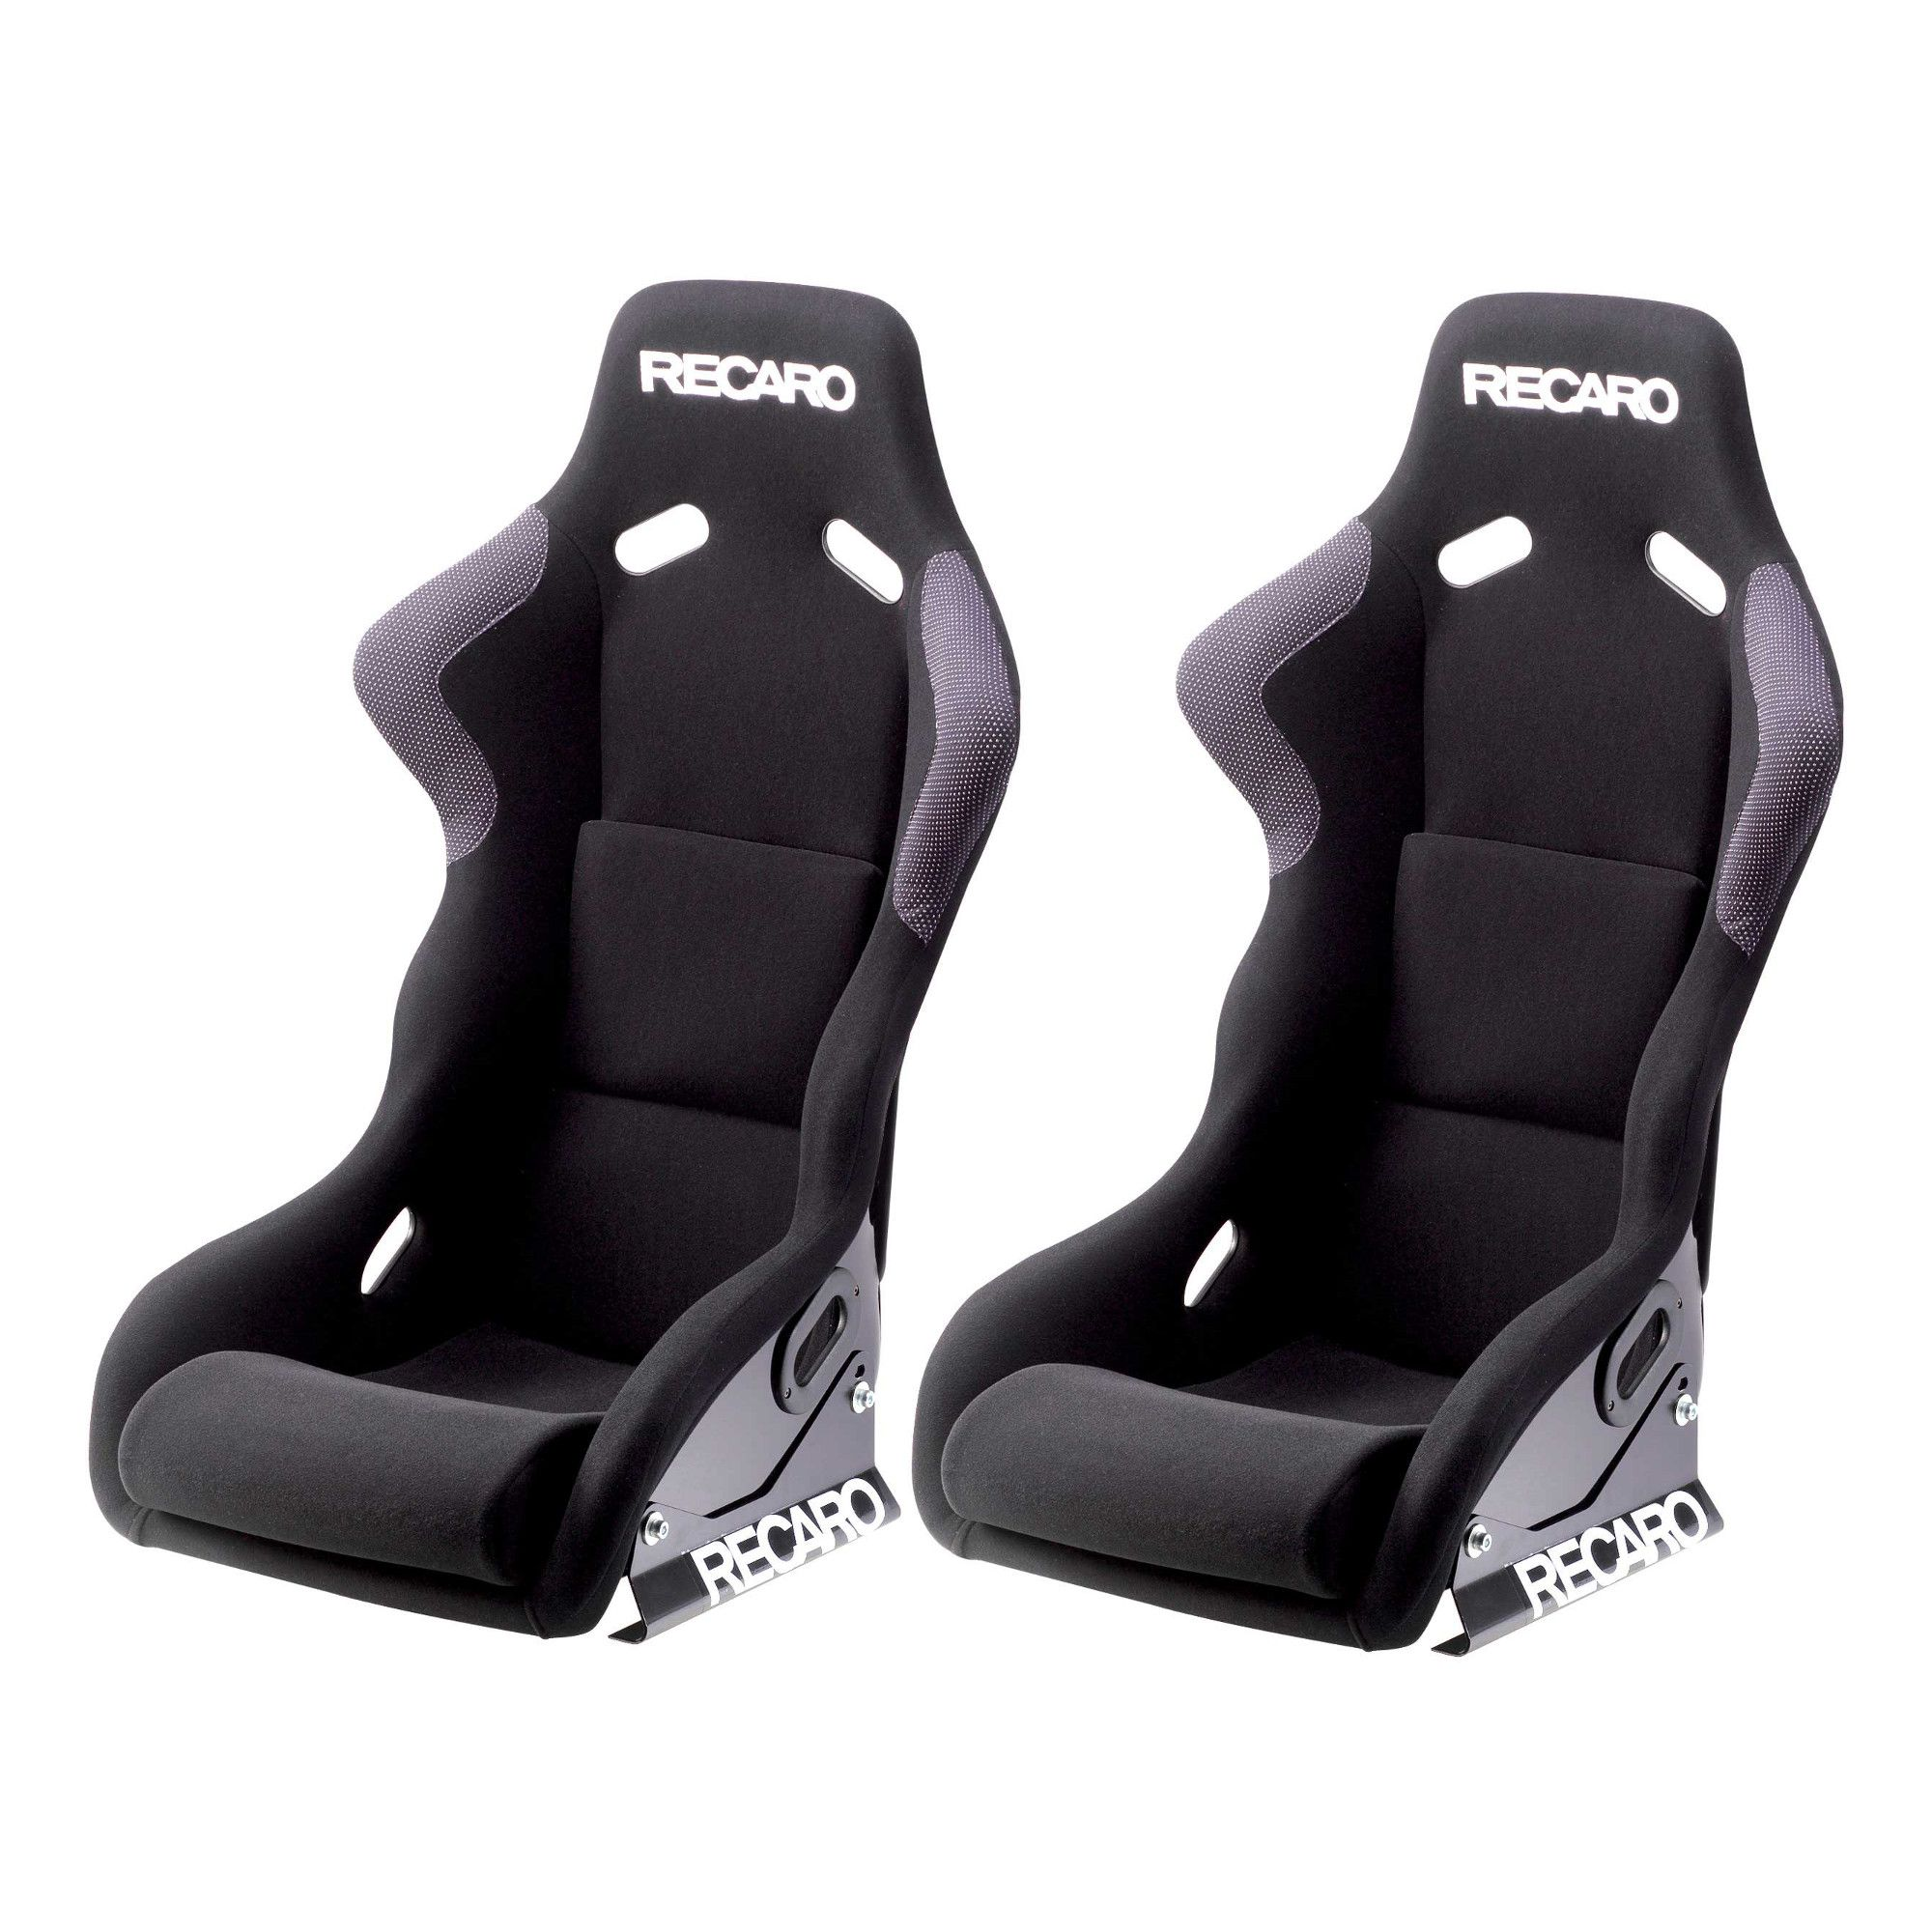 Recaro Baby Seat Parts Details About 2 X Recaro Profi Spg Fia Approved Fibreglass Rally Bucket Seats Pair Black